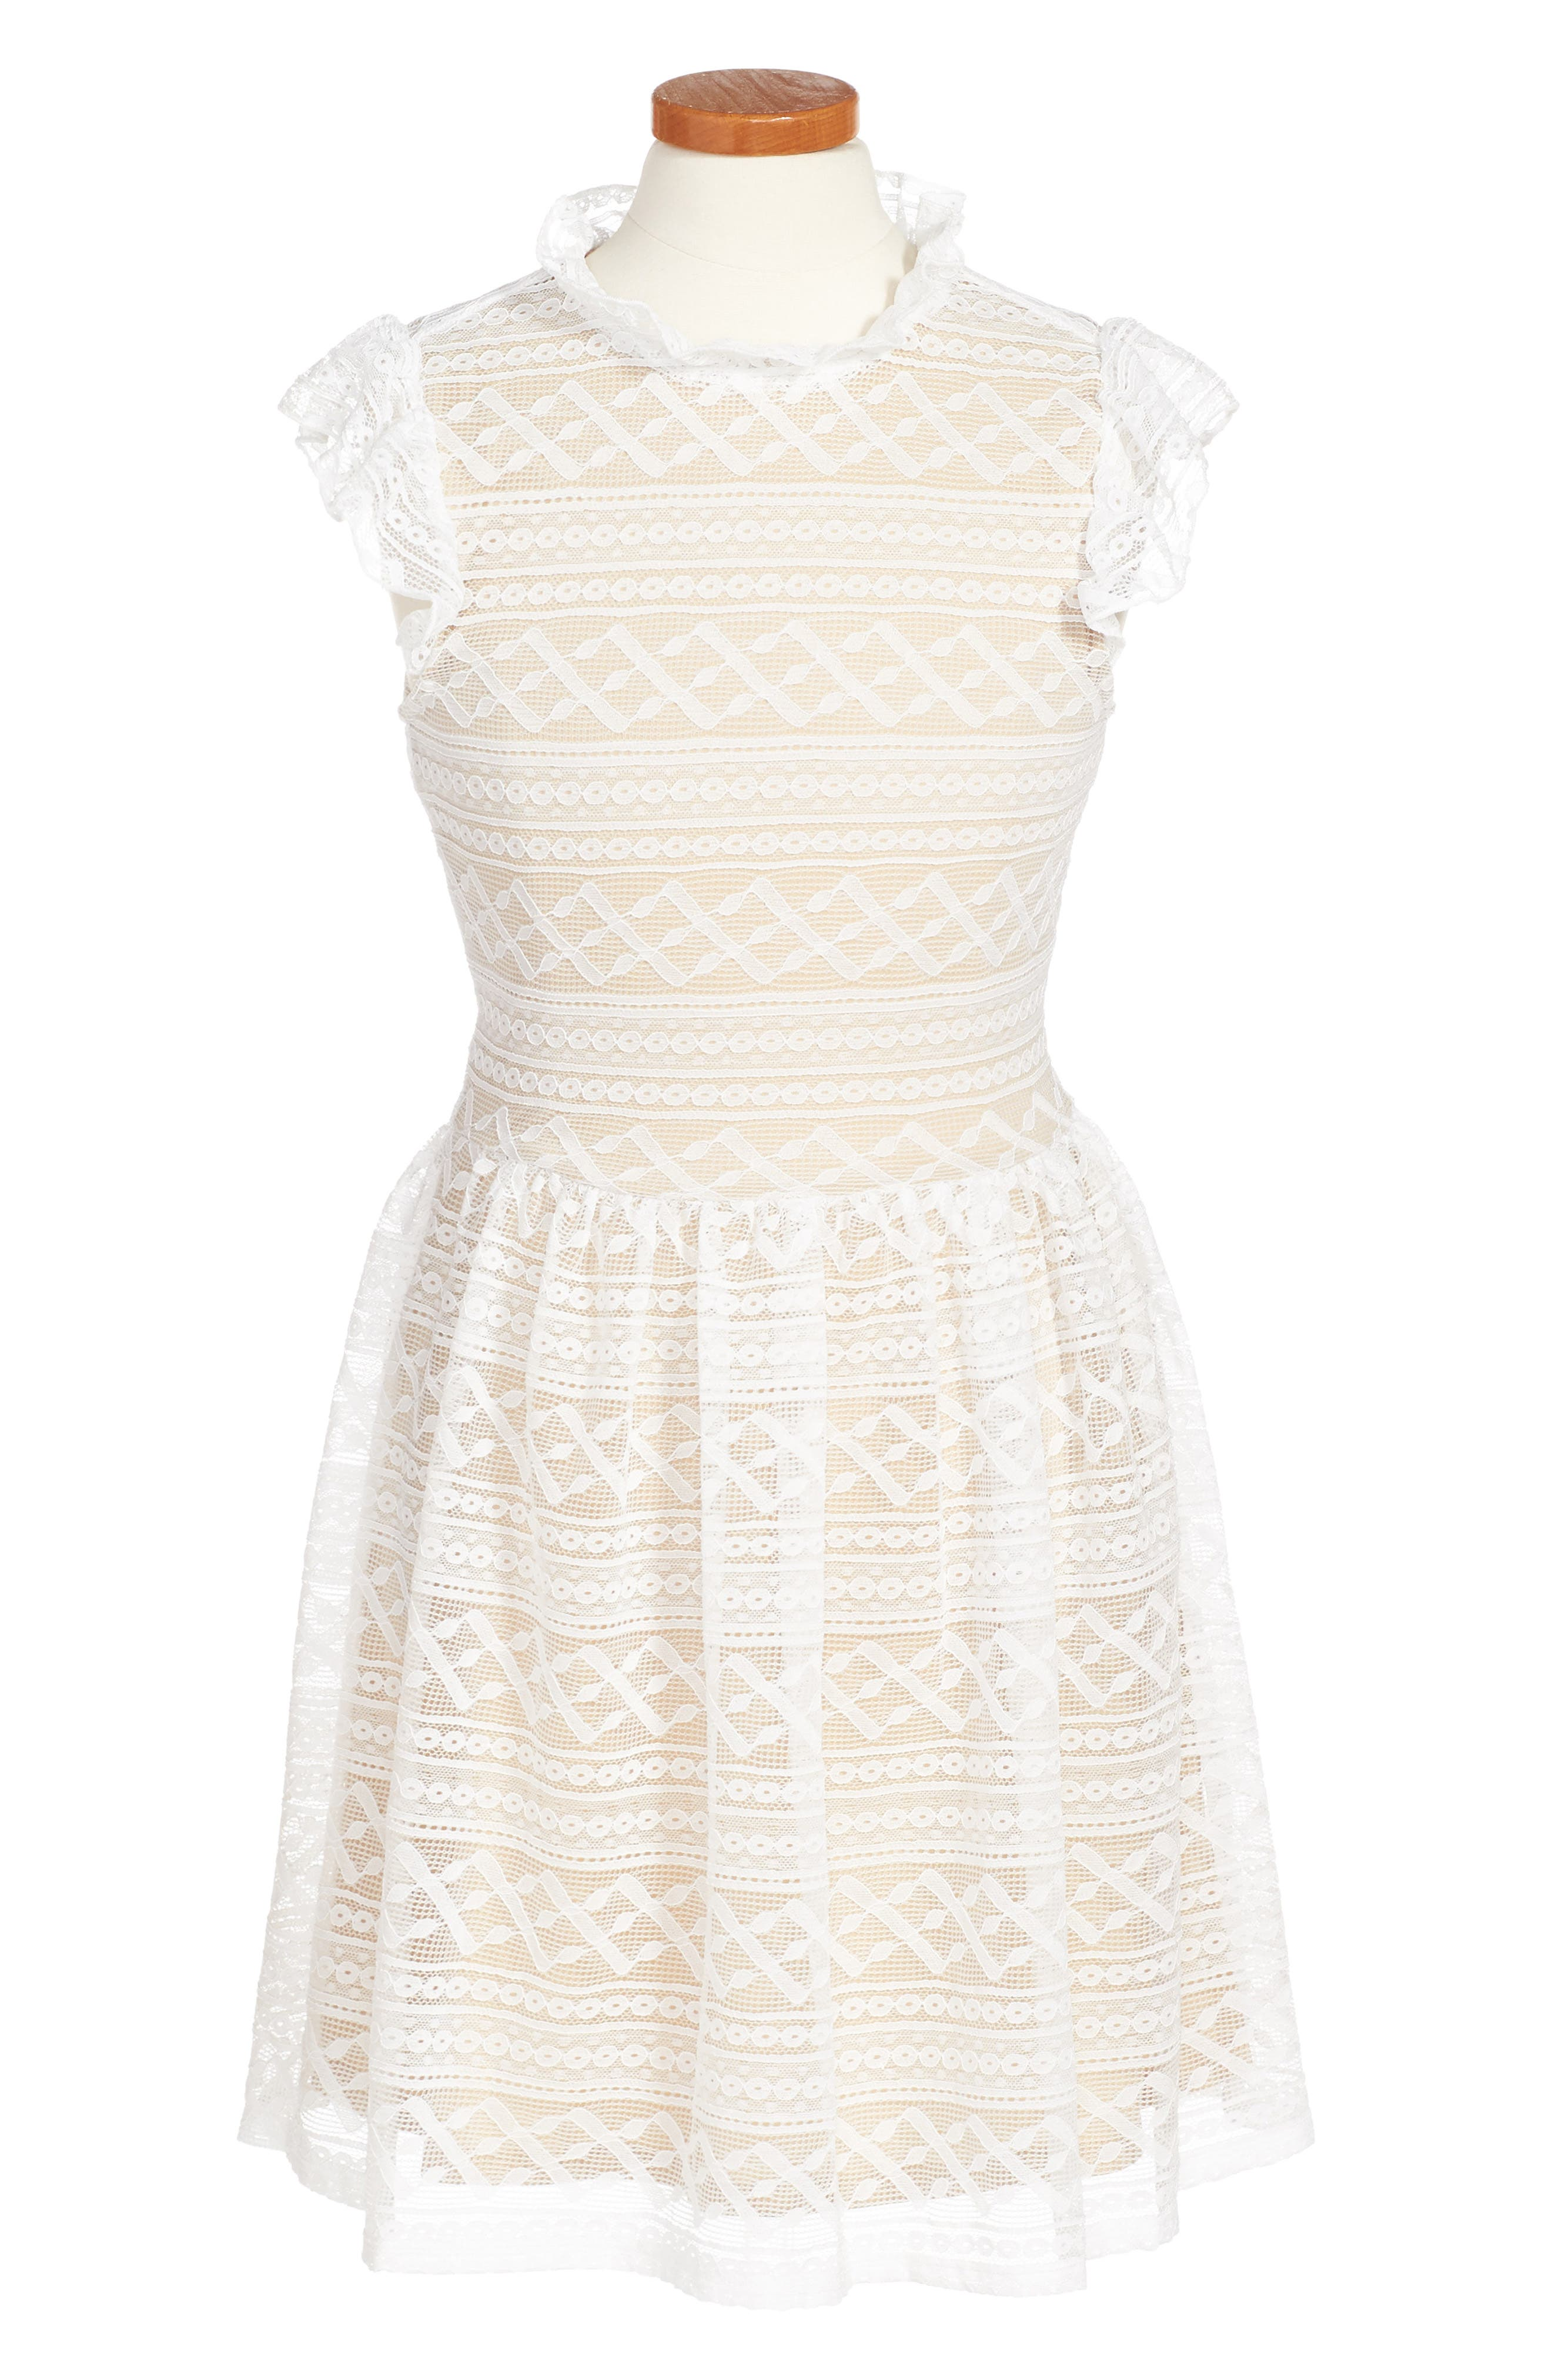 Main Image - Penelope Tree Hazel Dress (Big Girls)